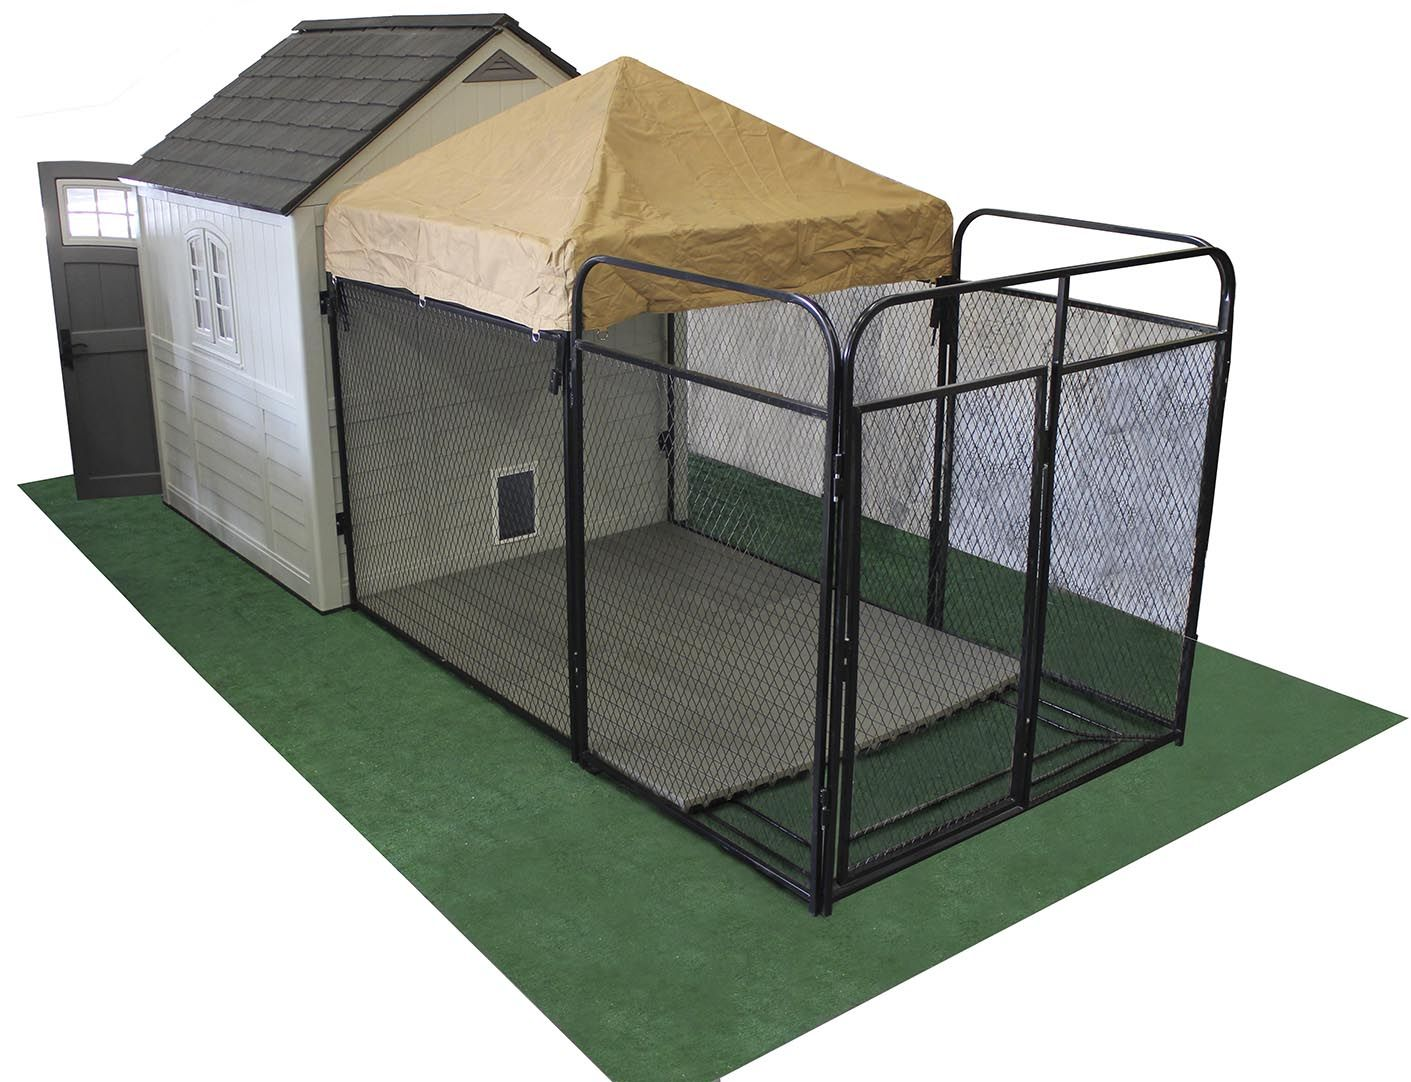 kennel shed conversion kits | house: outside spaces | pinterest